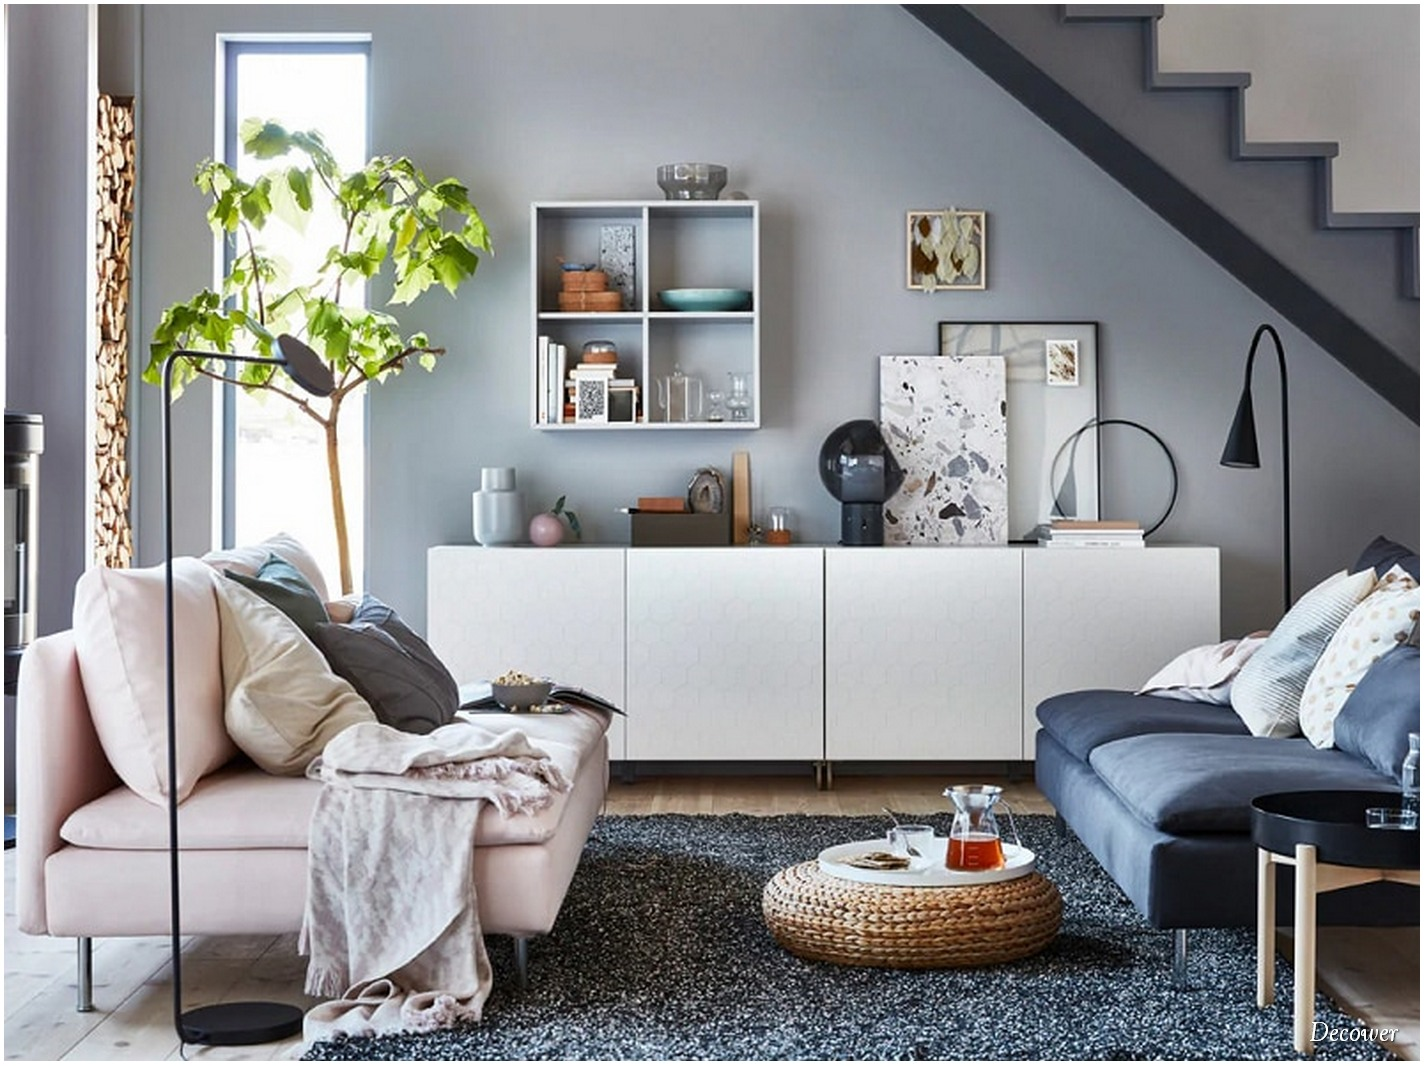 10 Ideas For Decorating Your Living Room and Family Room